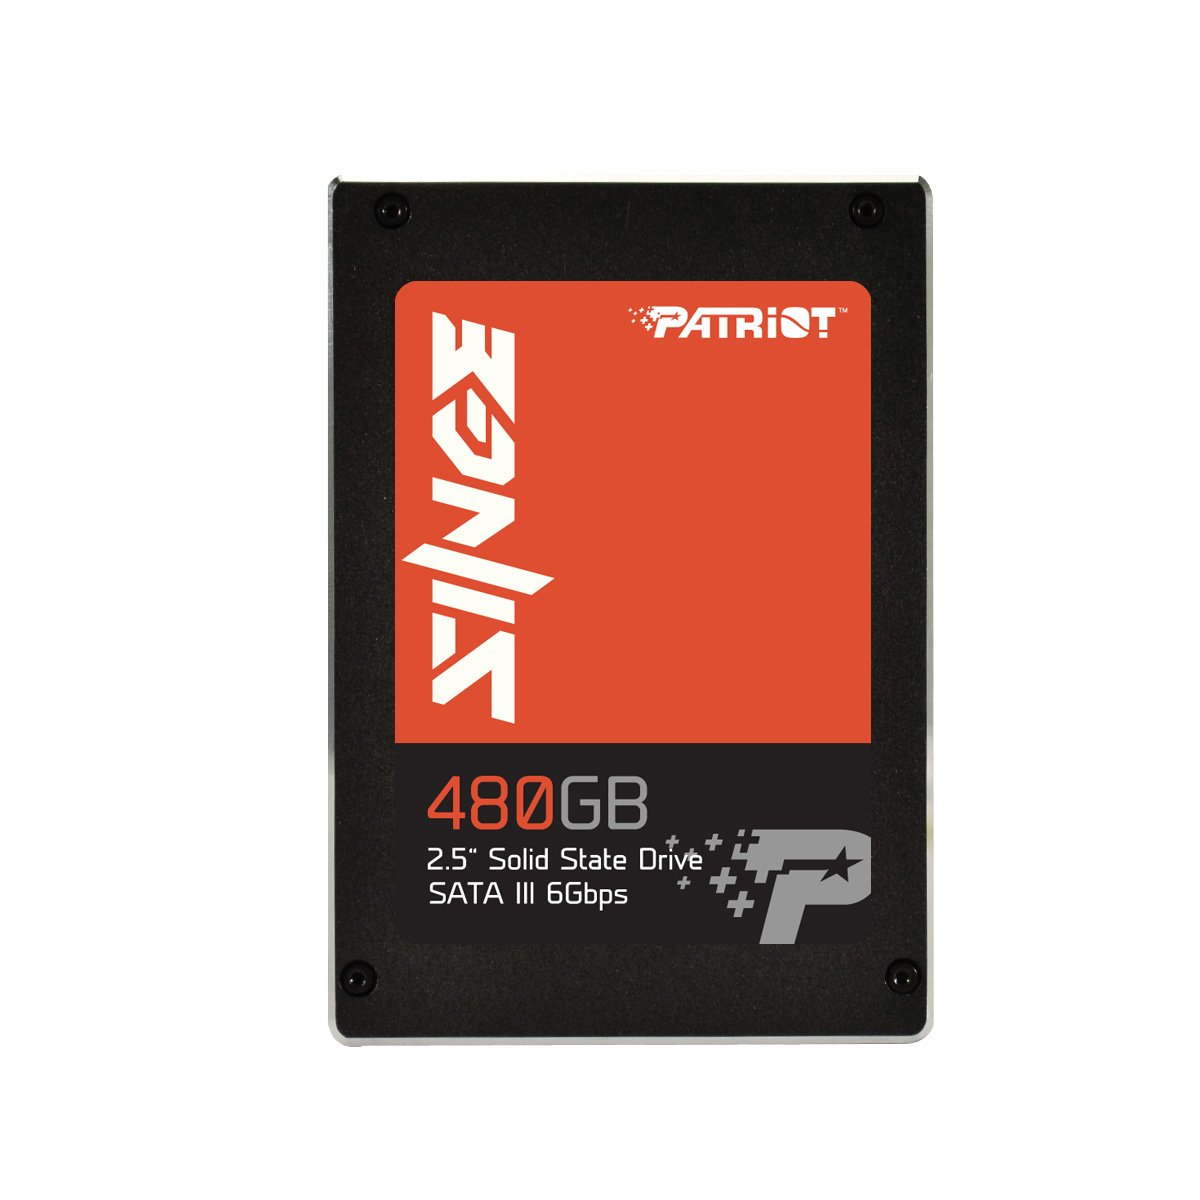 Patriot Singe 2.5'' 480GB SATA III SSD Drive Up to 550MB/s Read & 500MB/s Write Transfer Speeds